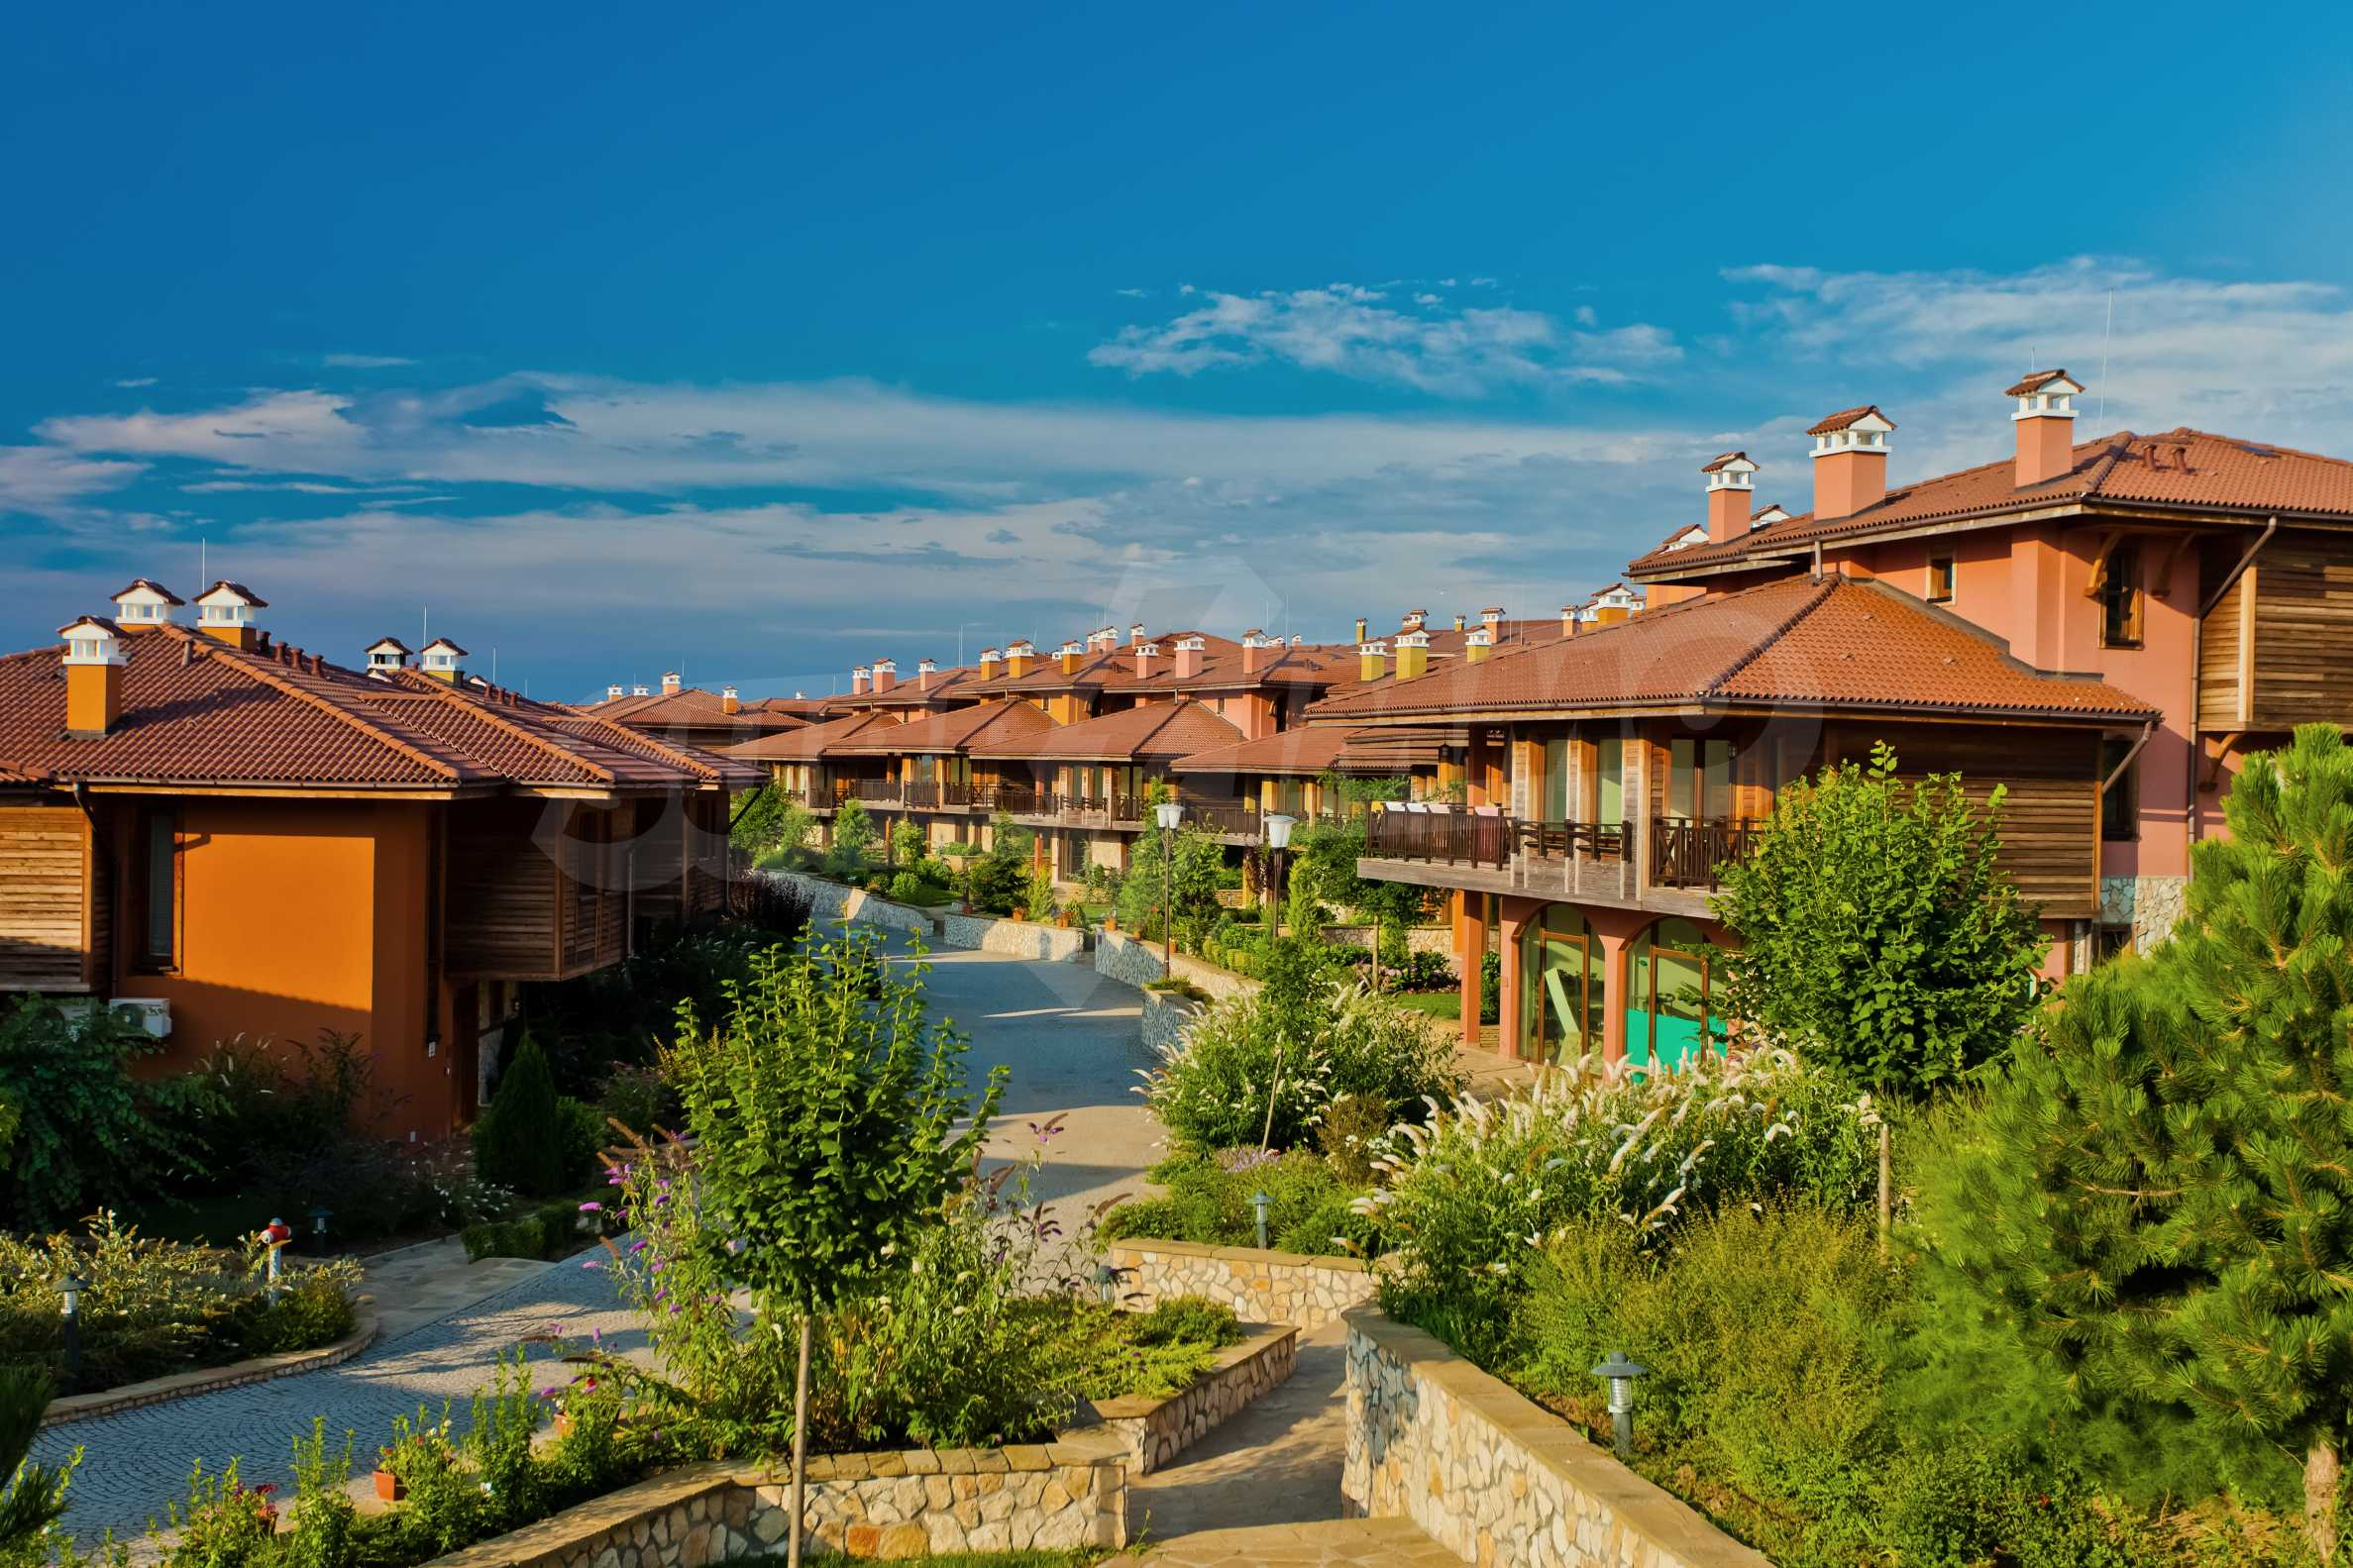 Sozopolis - unique coastal complex of townhouses and apartments near Sozopol 2